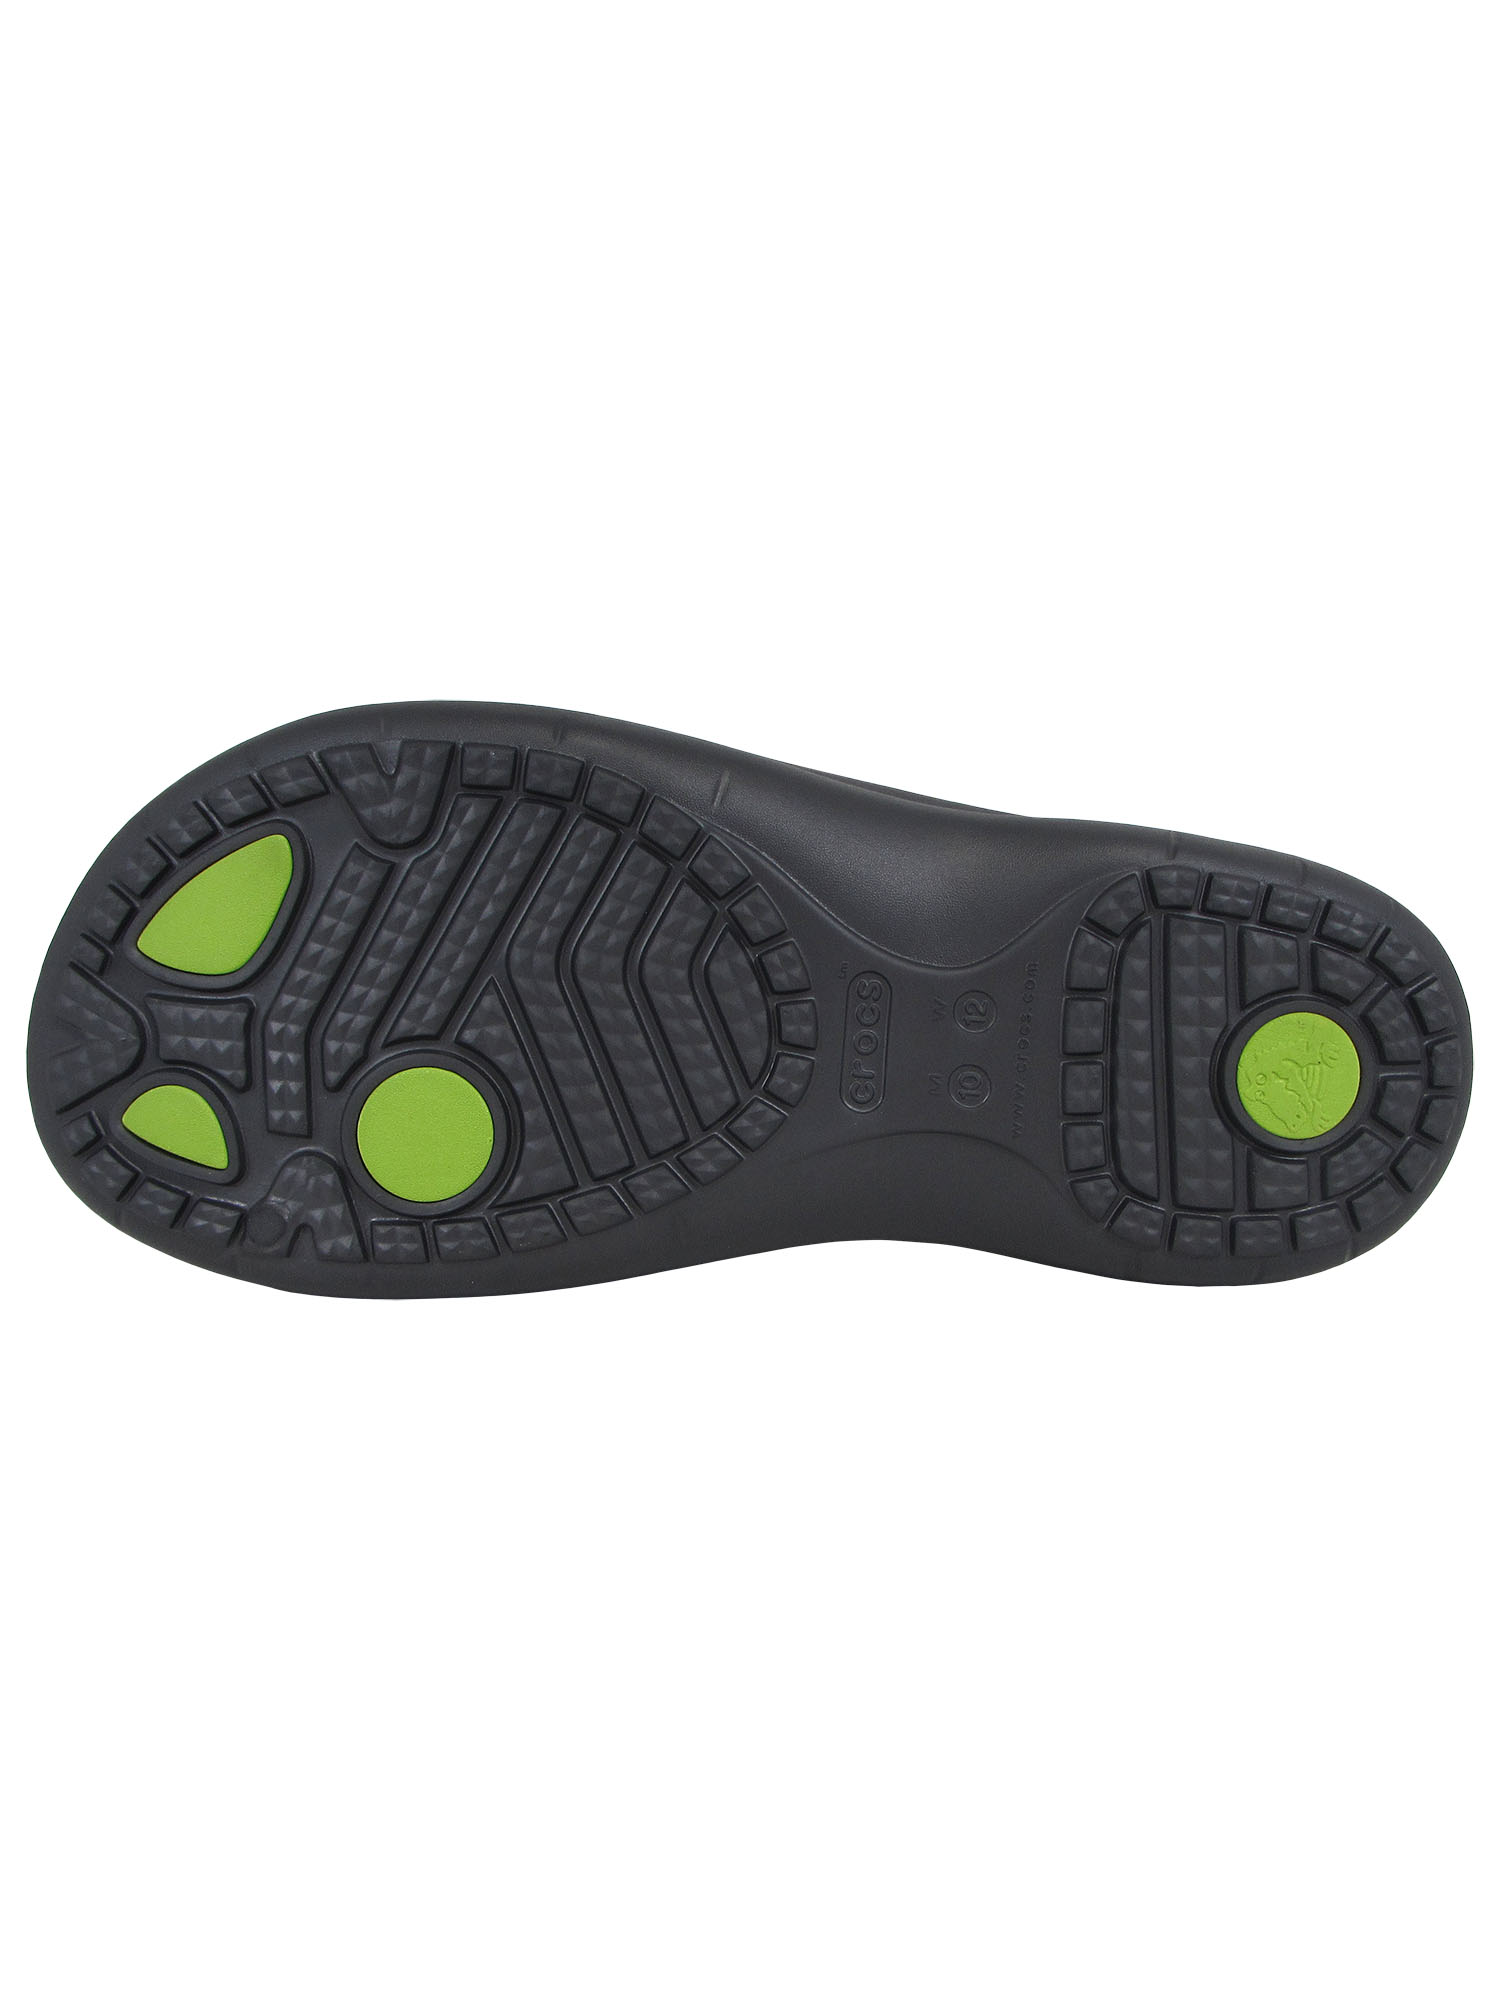 2859ddf4e5d5 Crocs Modi Sport Slide Sandals - Men s Size 9 Graphite volt Green ...